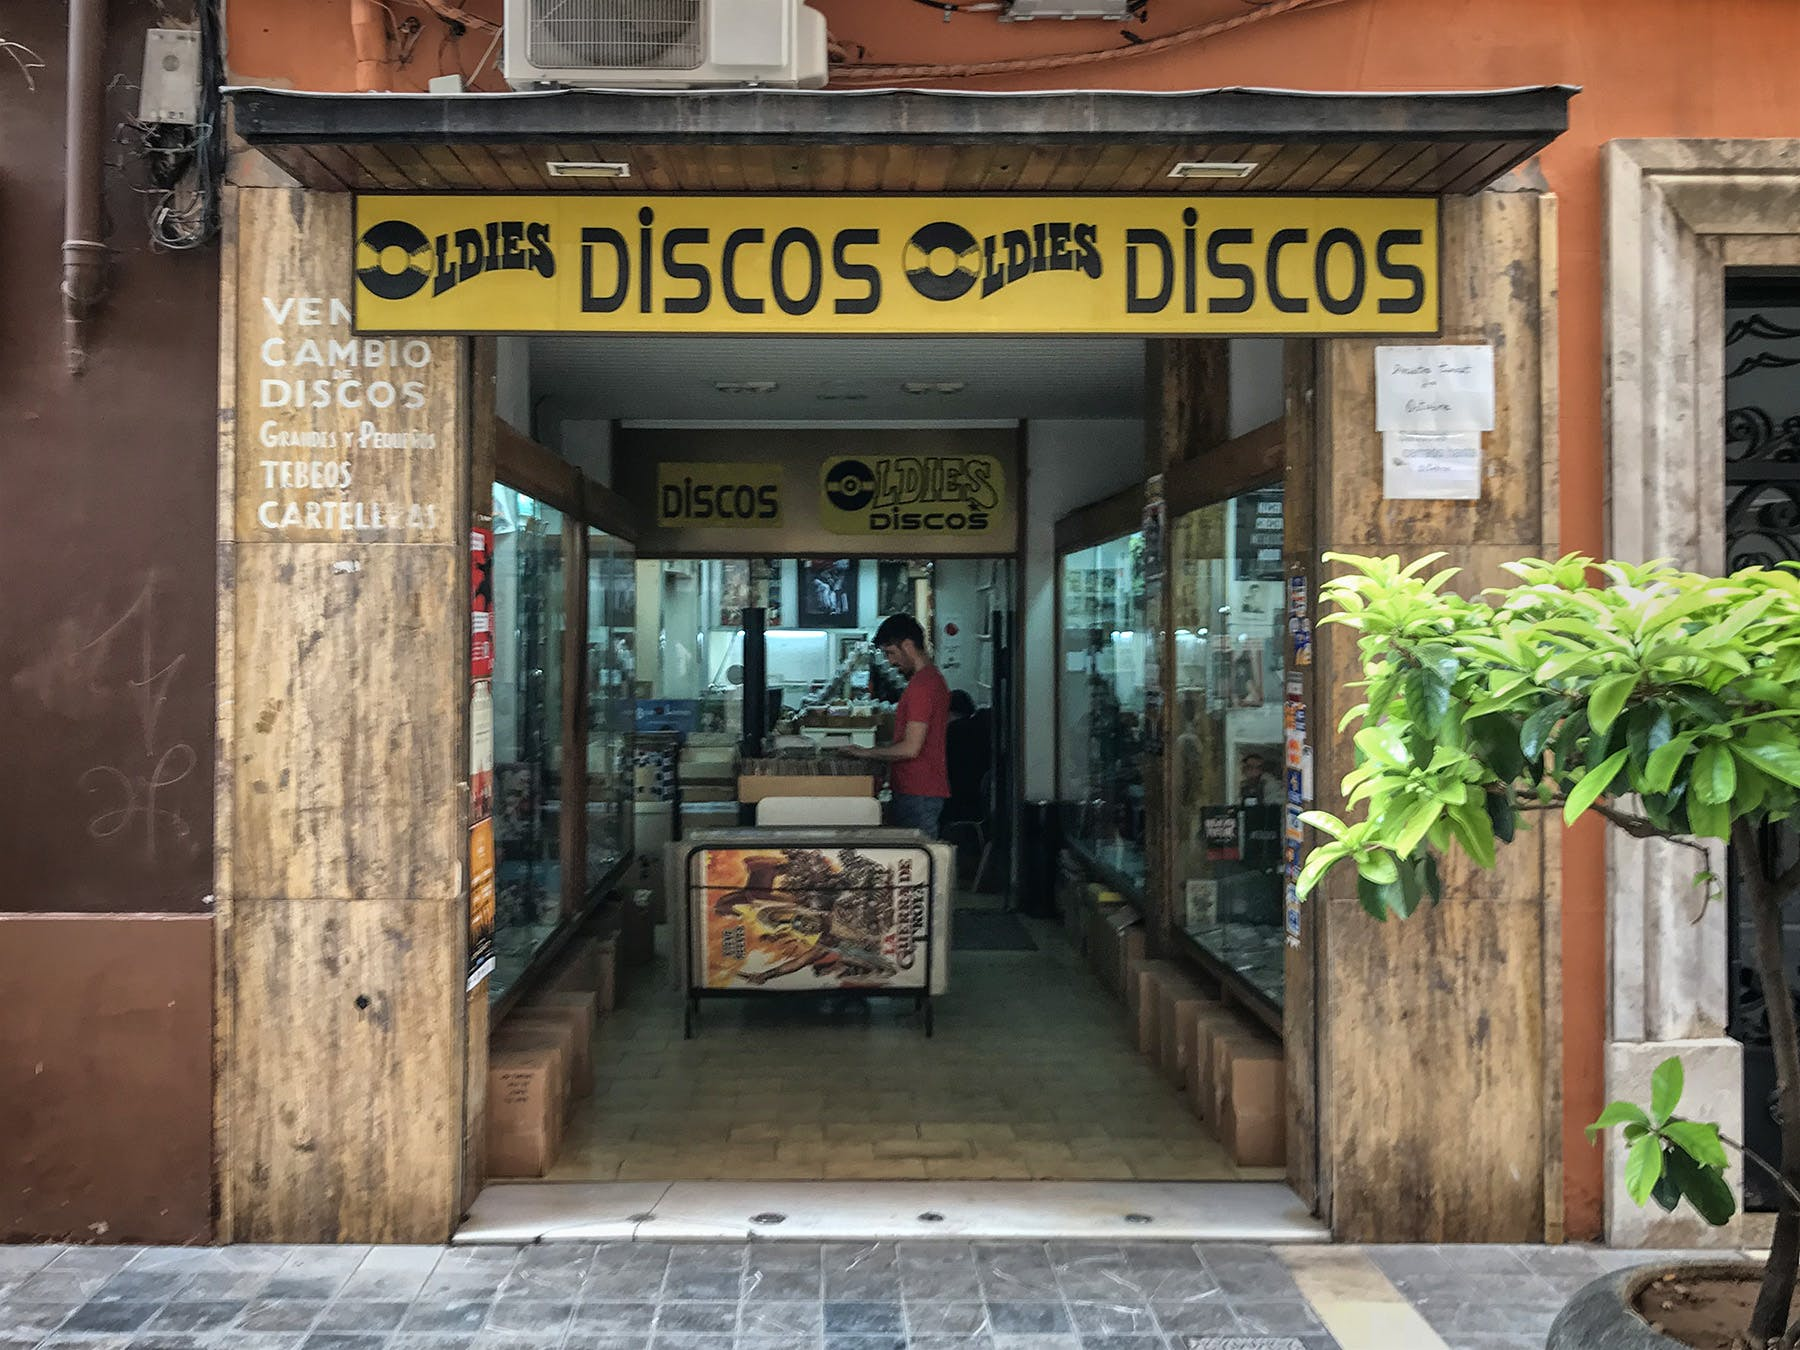 Discos Oldies - Record Store Image